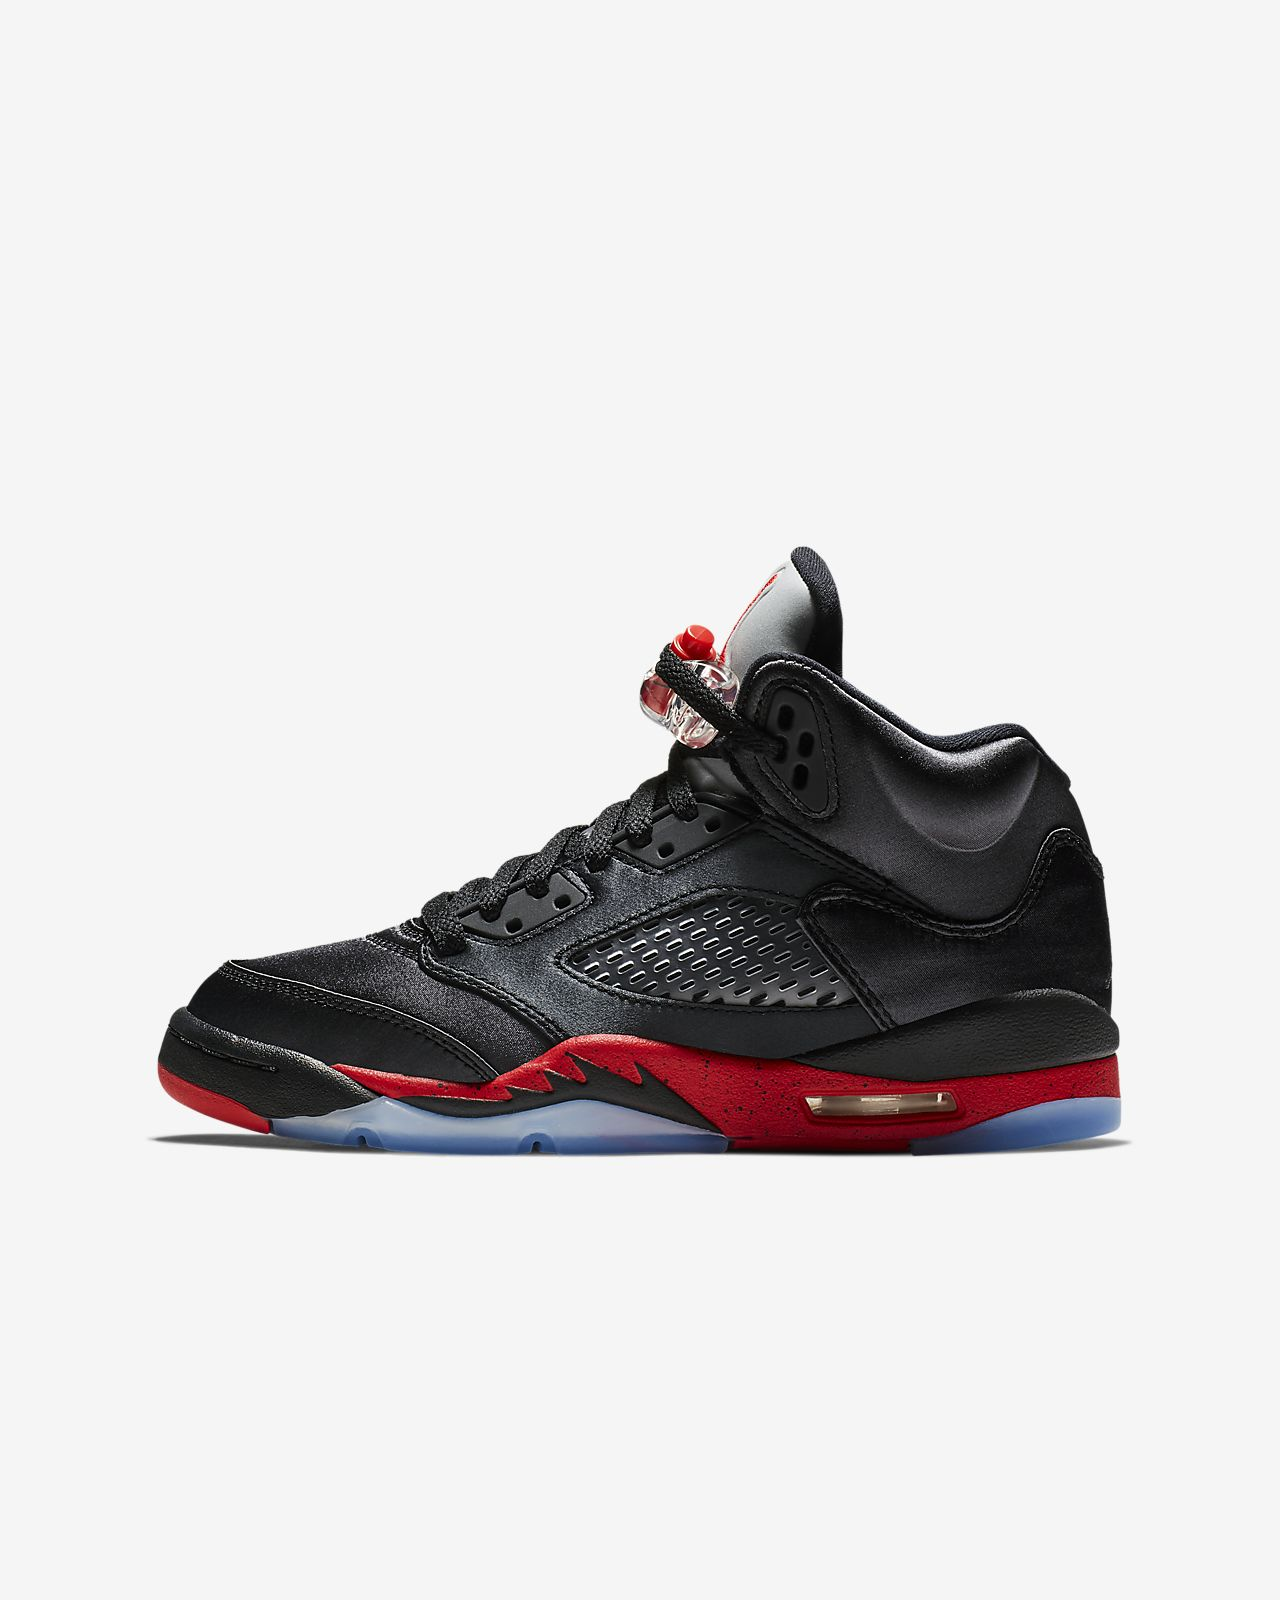 51d326e078d Air Jordan 5 Retro Older Kids' Shoe. Nike.com CA